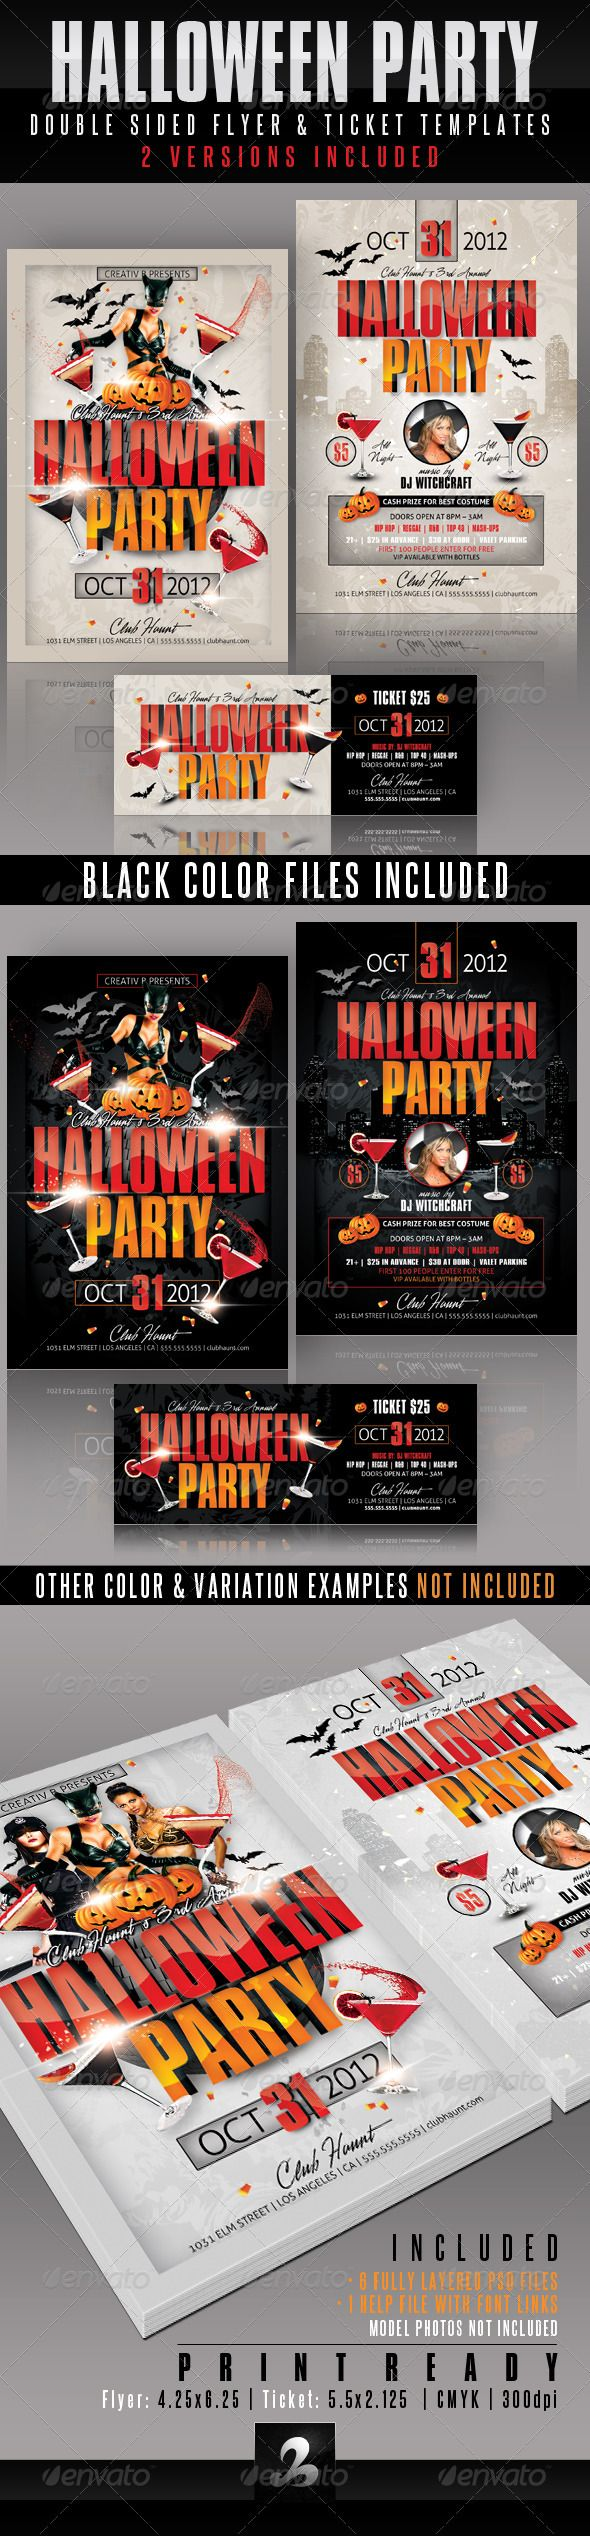 The 25+ best Halloween party flyer ideas on Pinterest | Flyers ...